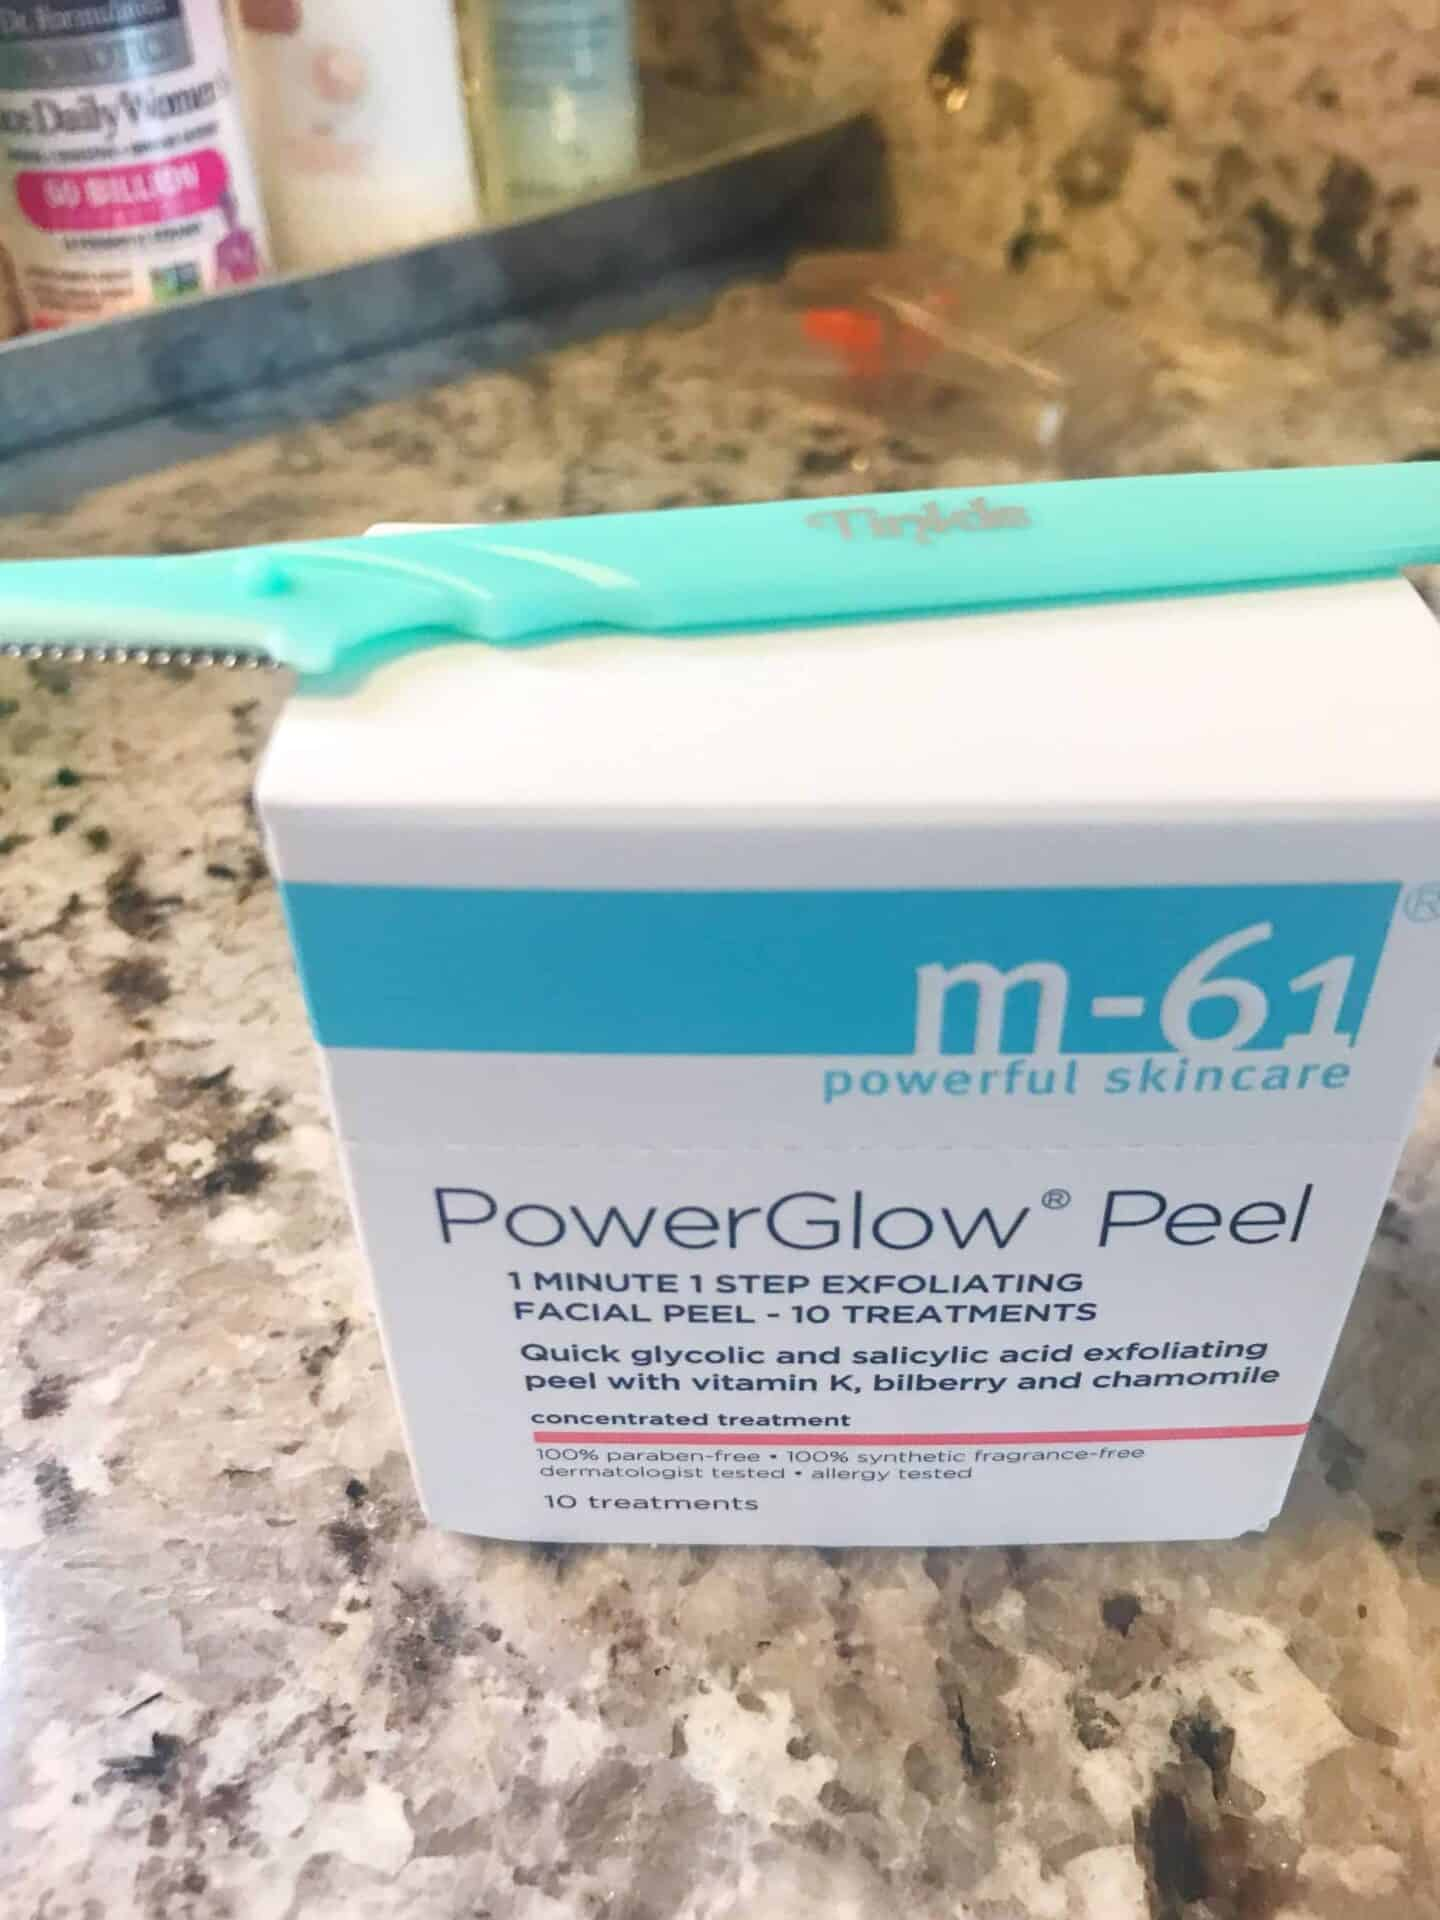 Tinkle Razor and Power Glow Peel